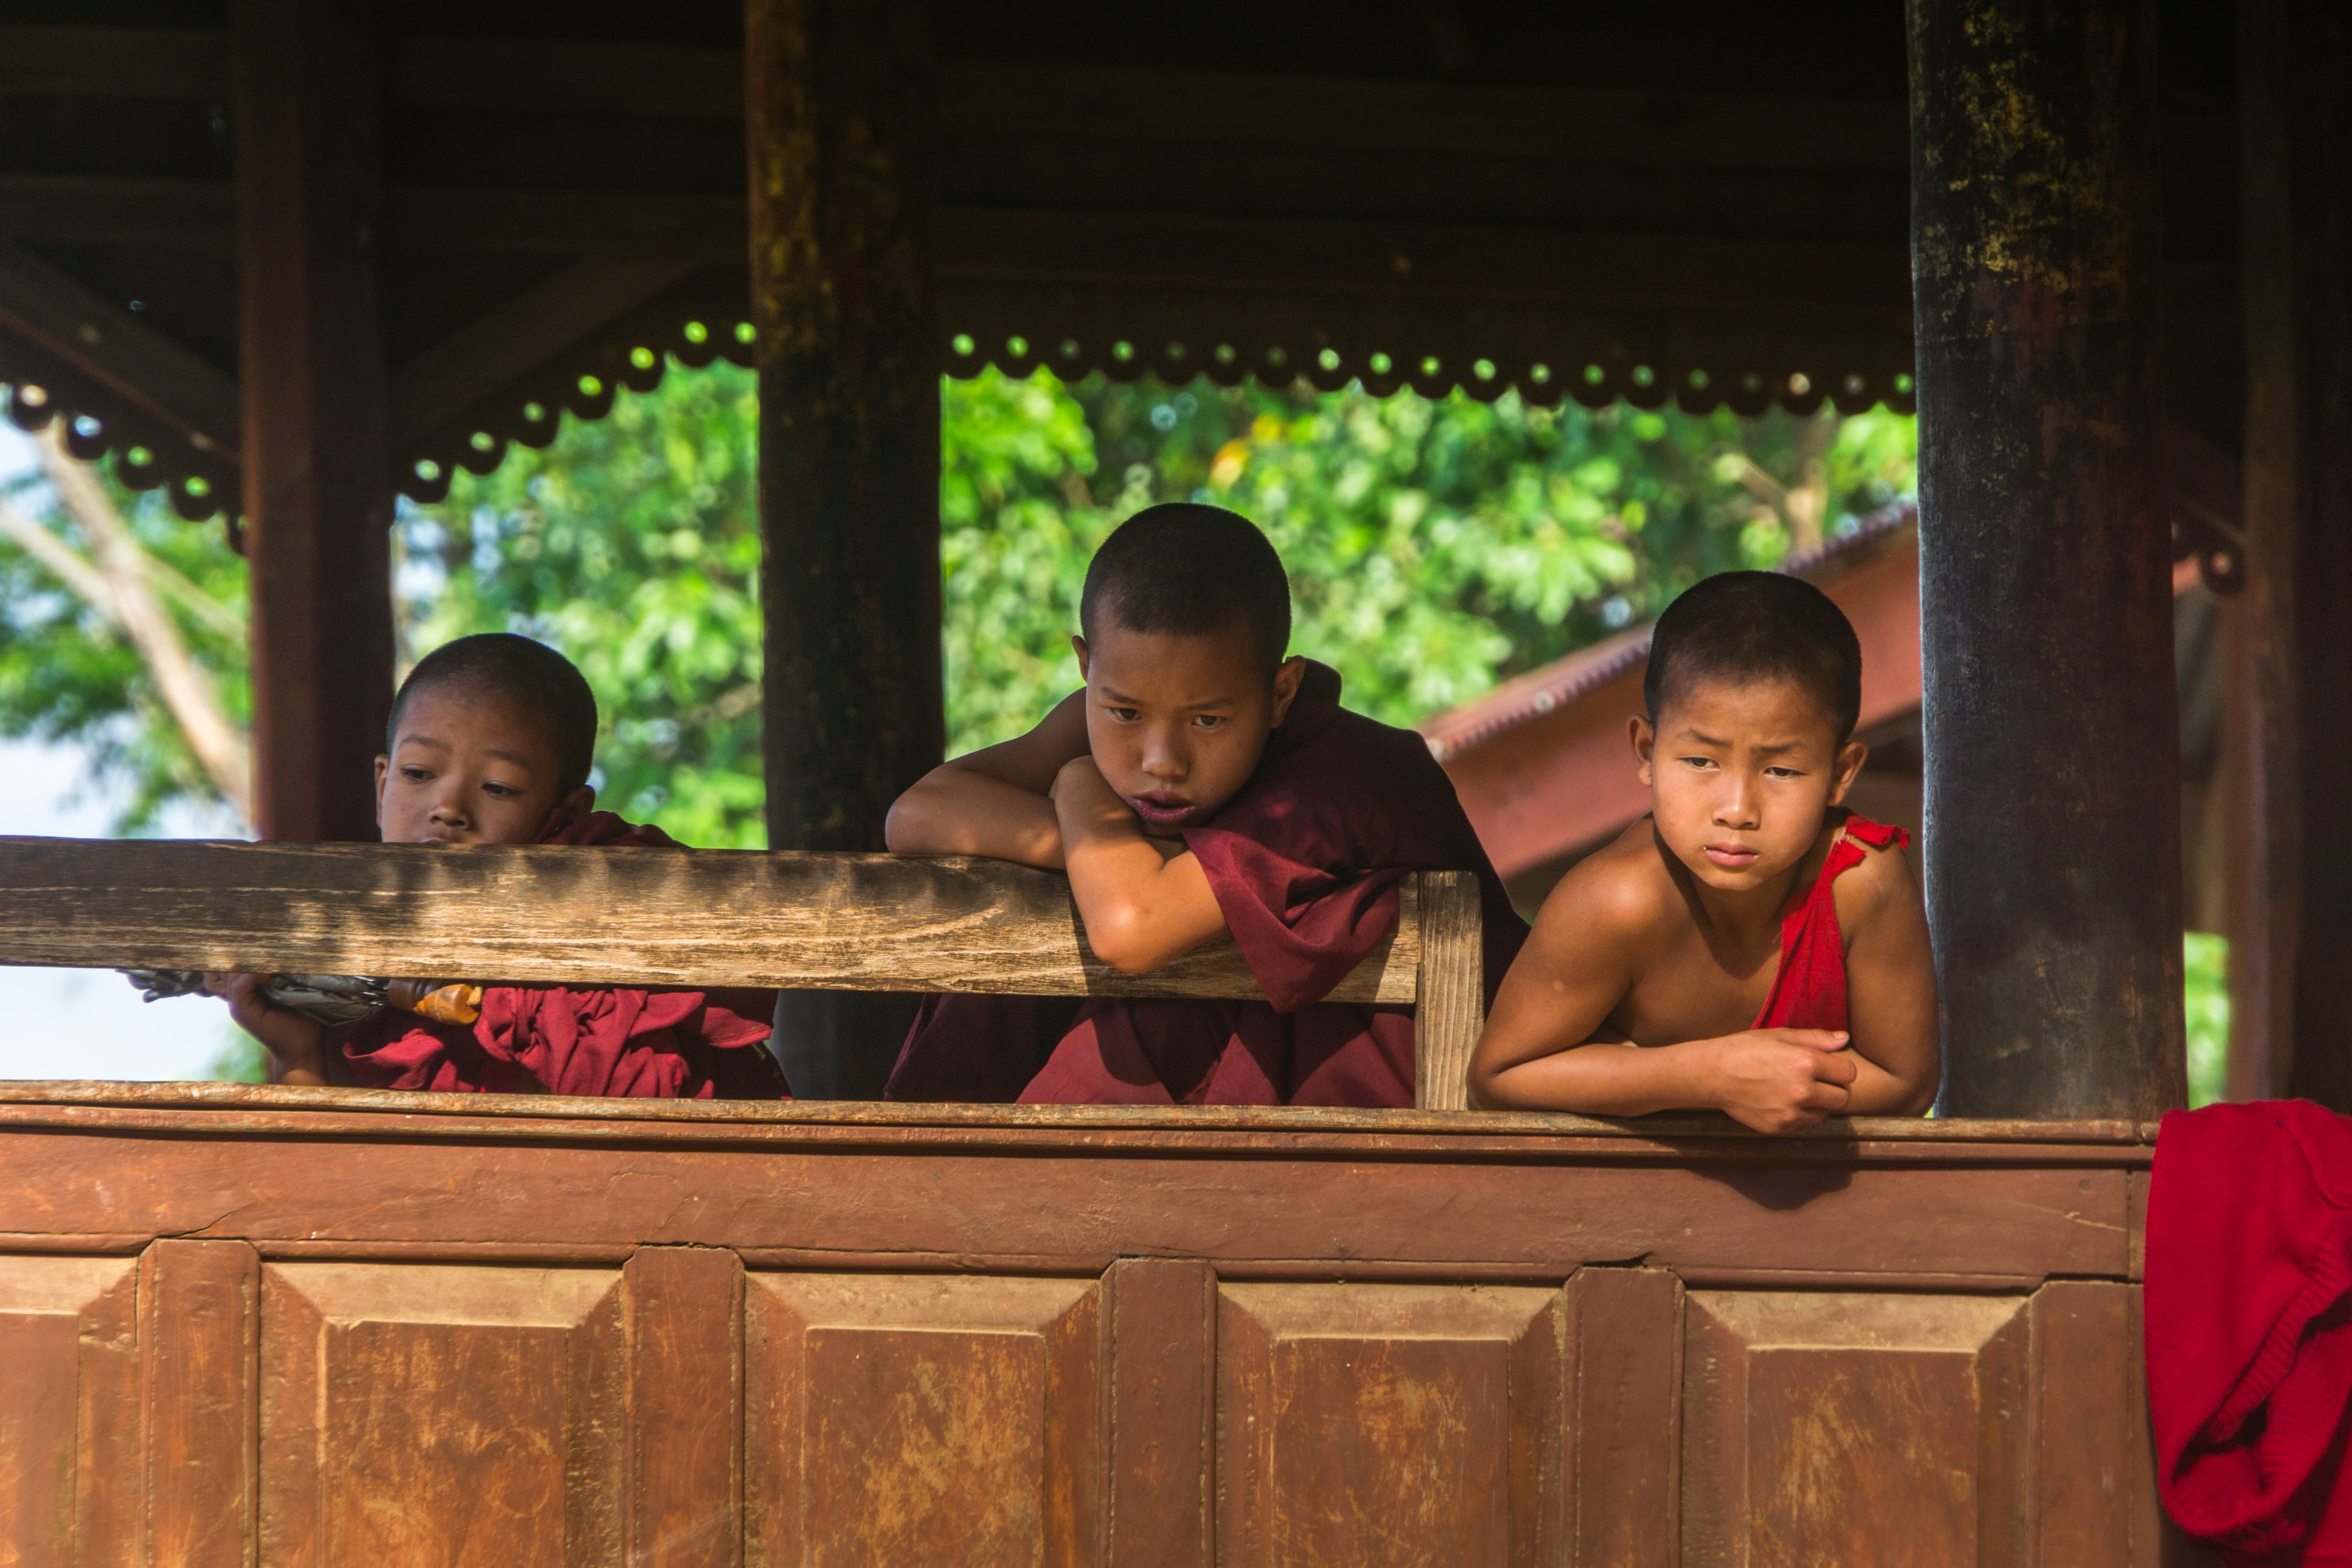 Bored children in robes lean against a temple railing in Myanmar